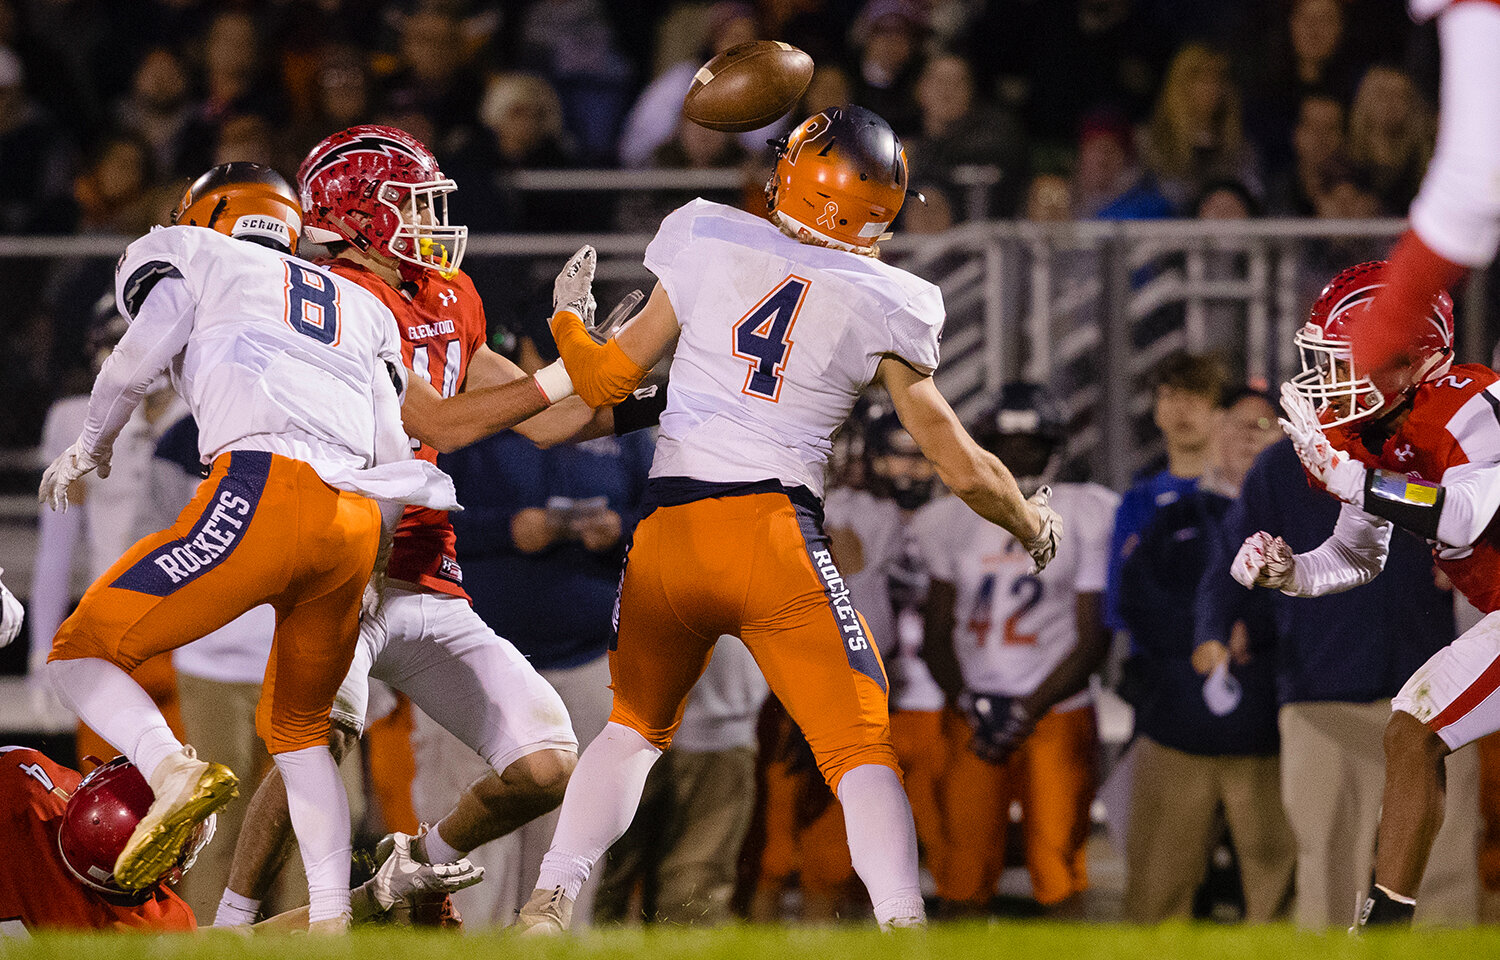 Rochester's Henry Patterson (4)  bobbles a pass that was intercepted by Glenwood at Glenwood High School Friday, Oct. 25, 2019. [Ted Schurter/The State Journal-Register]